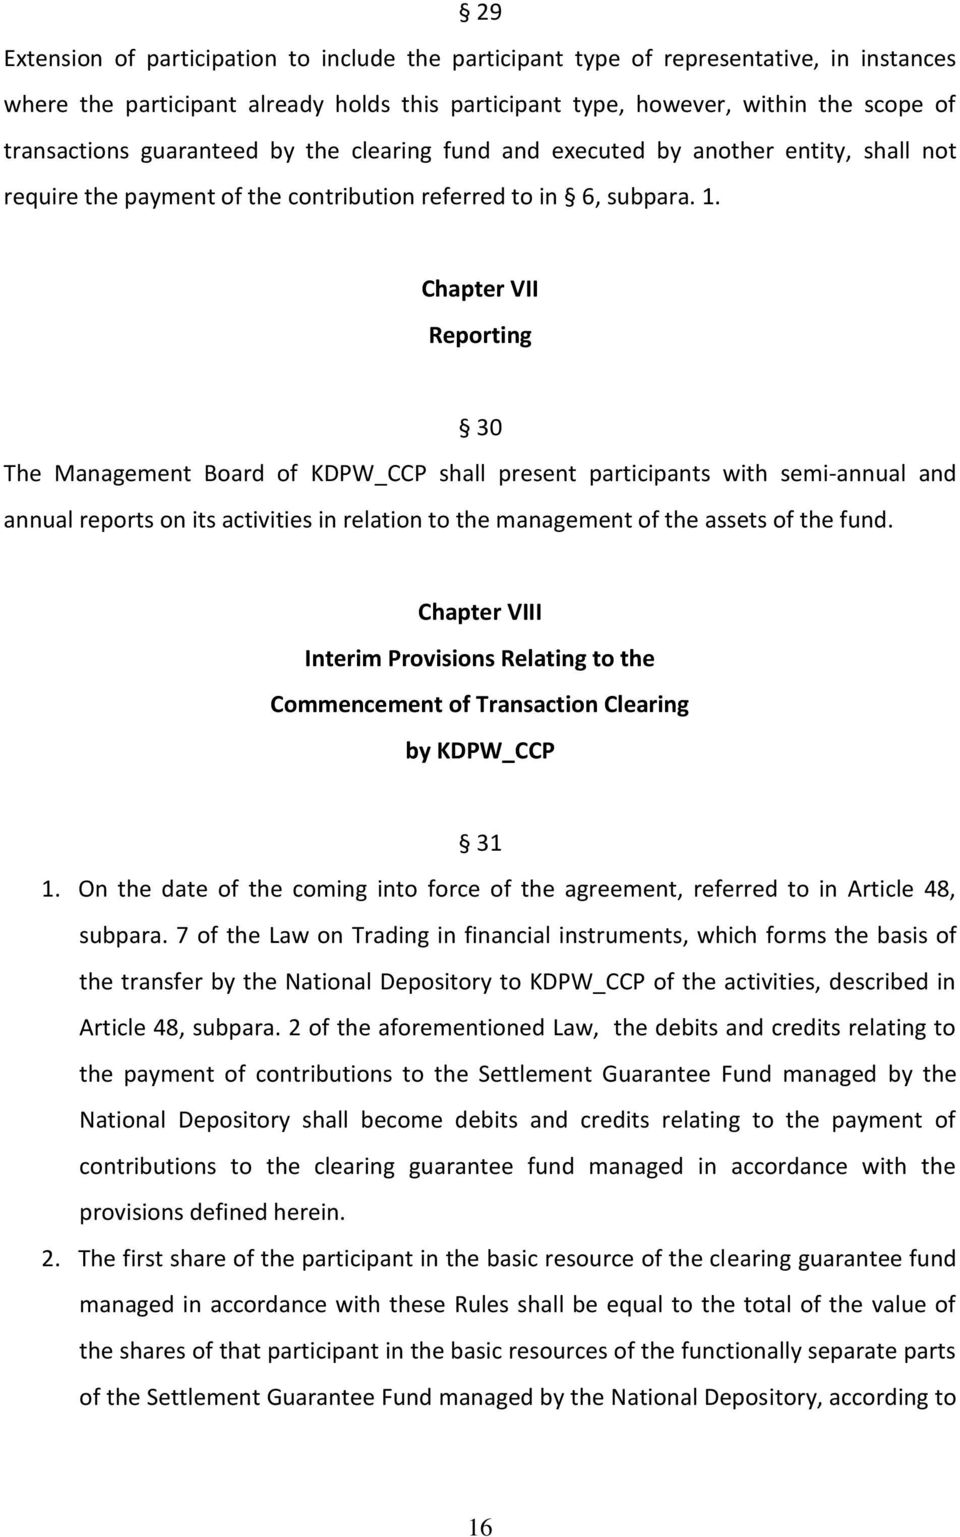 Chapter VII Reporting 30 The Management Board of KDPW_CCP shall present participants with semi-annual and annual reports on its activities in relation to the management of the assets of the fund.